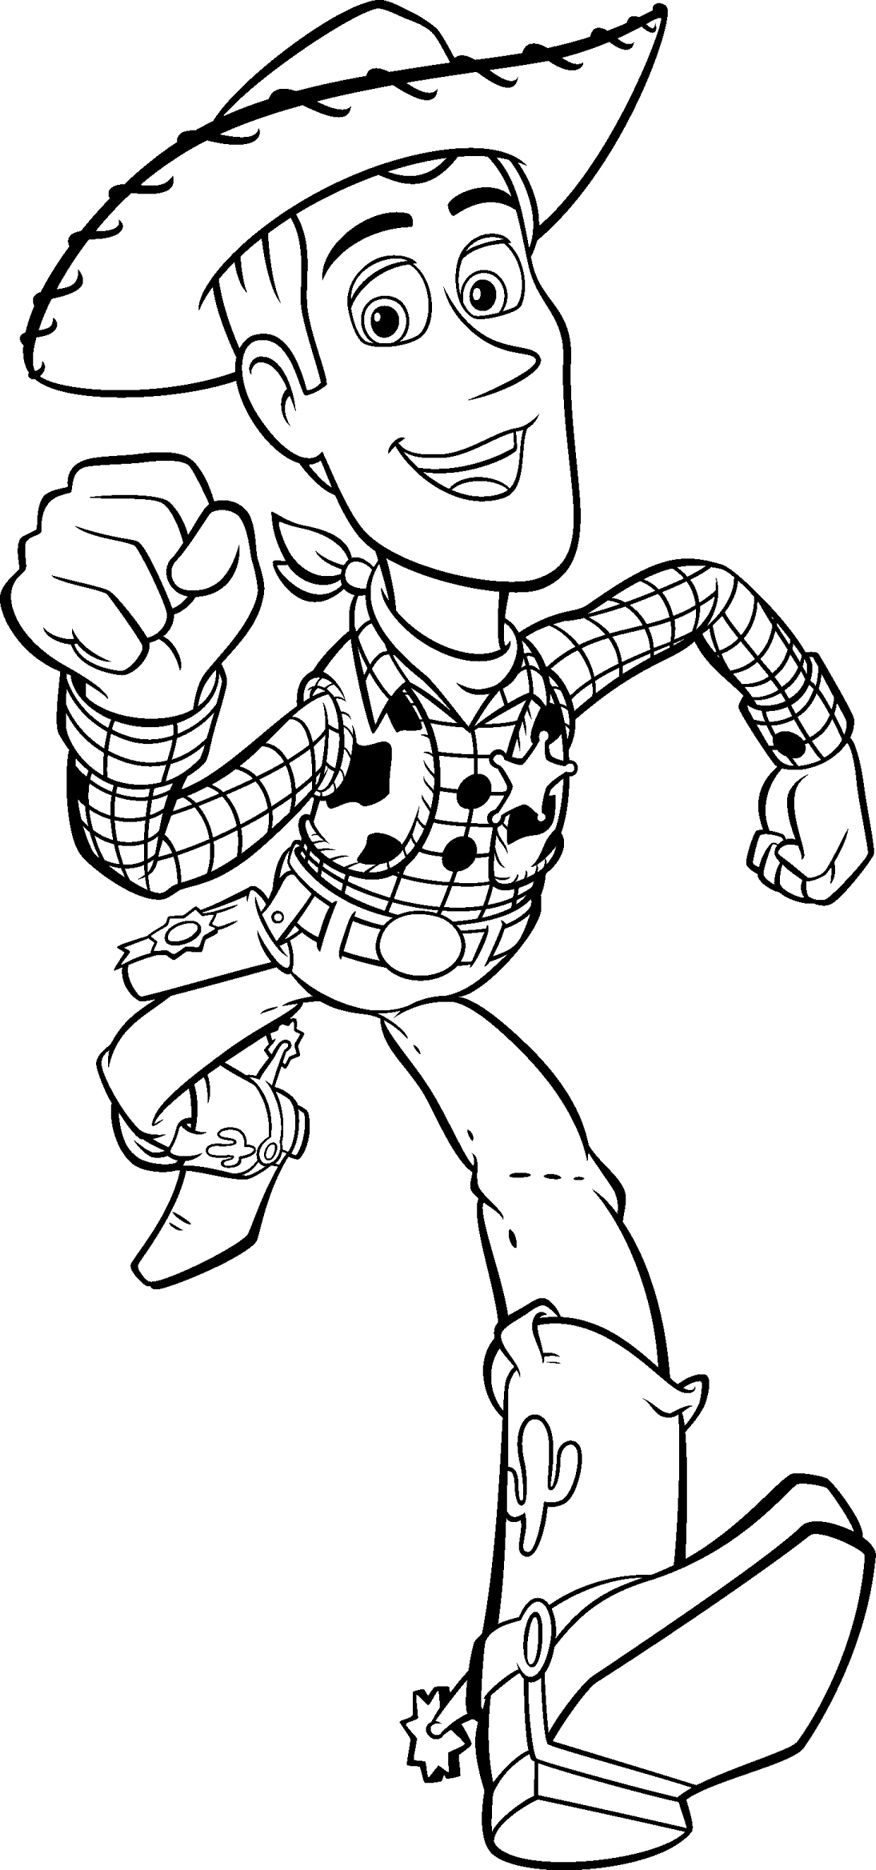 Coloriage Sur Laguerchecom Coloriages Enfant Toy Story Coloring